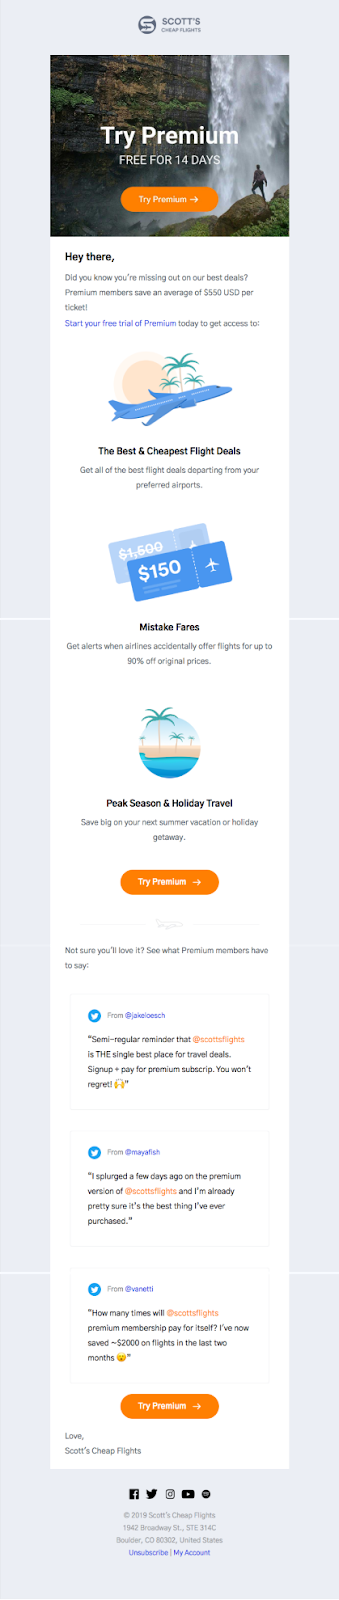 Send professional-looking emails with multimedia and images